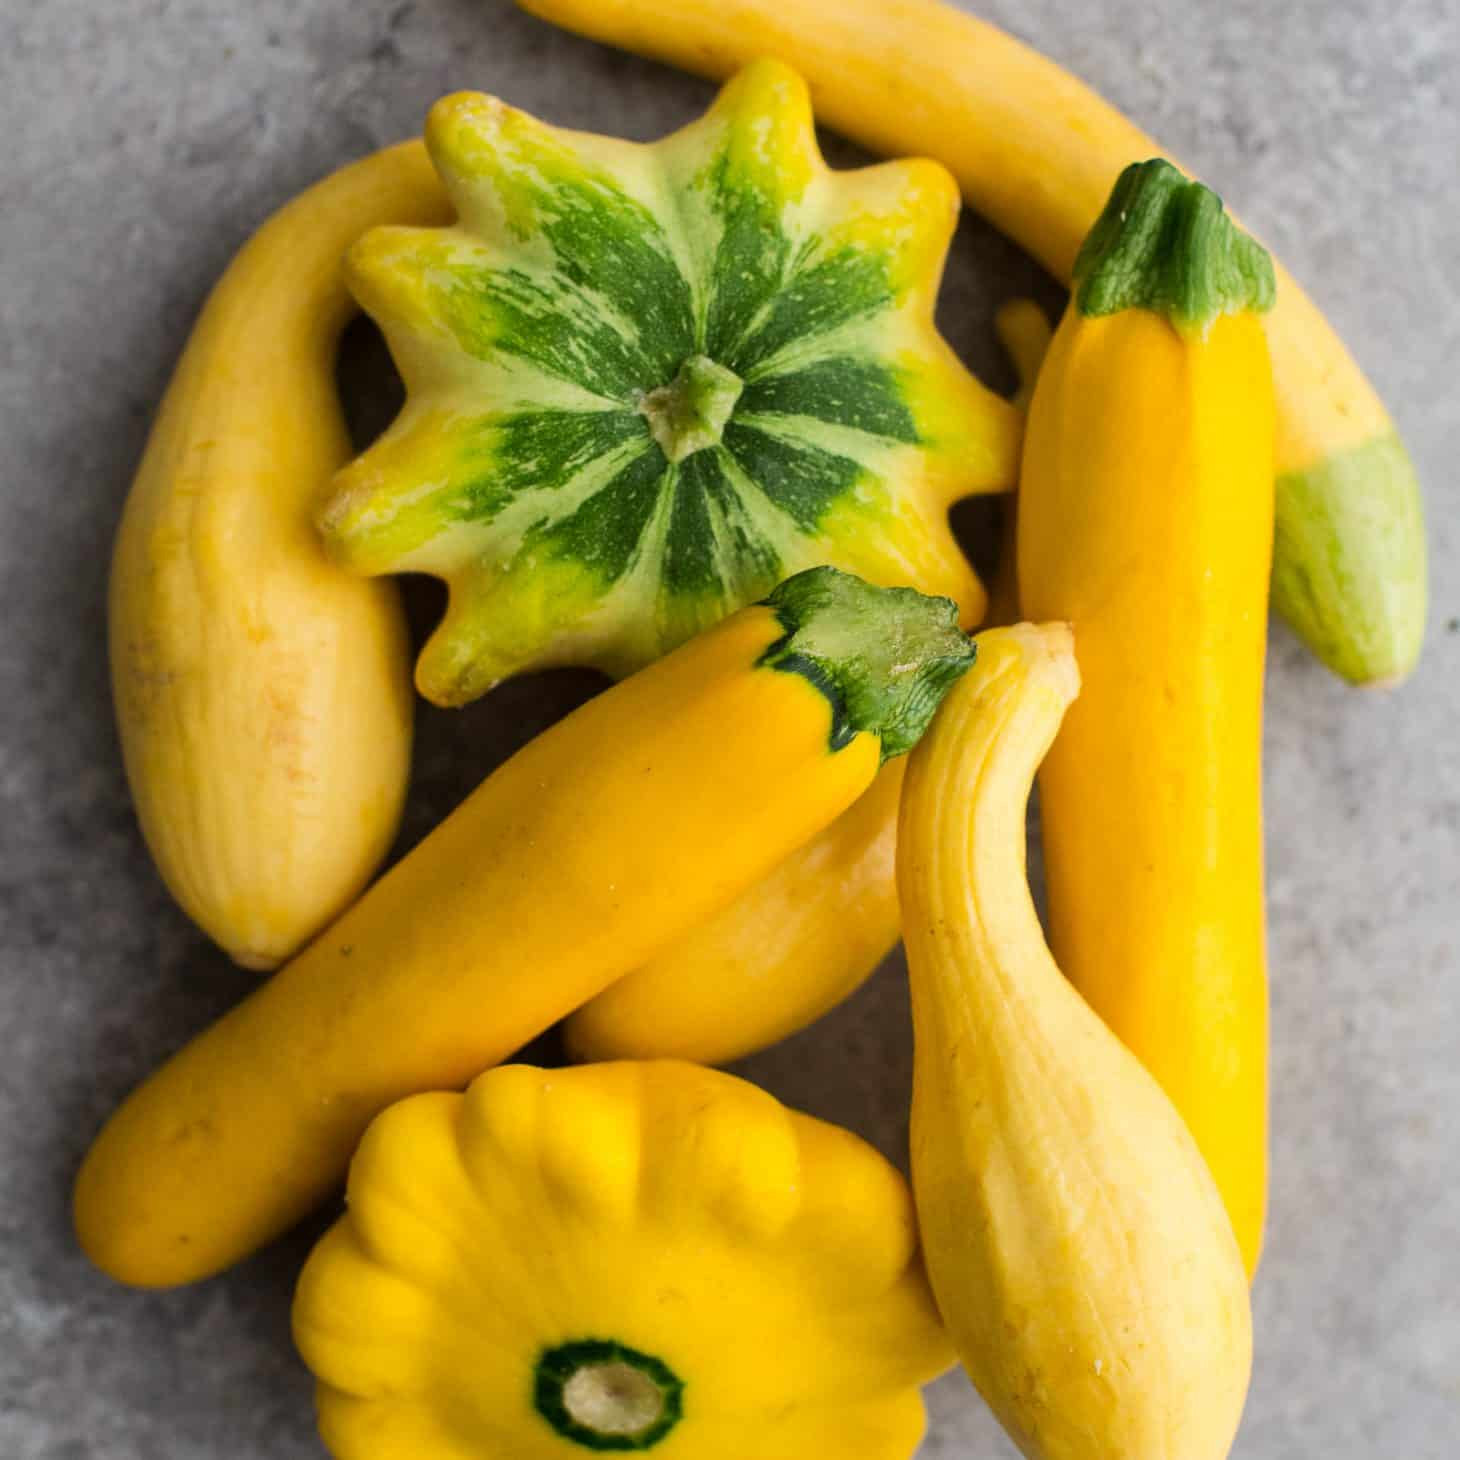 Summer Squash | Explore an Ingredient